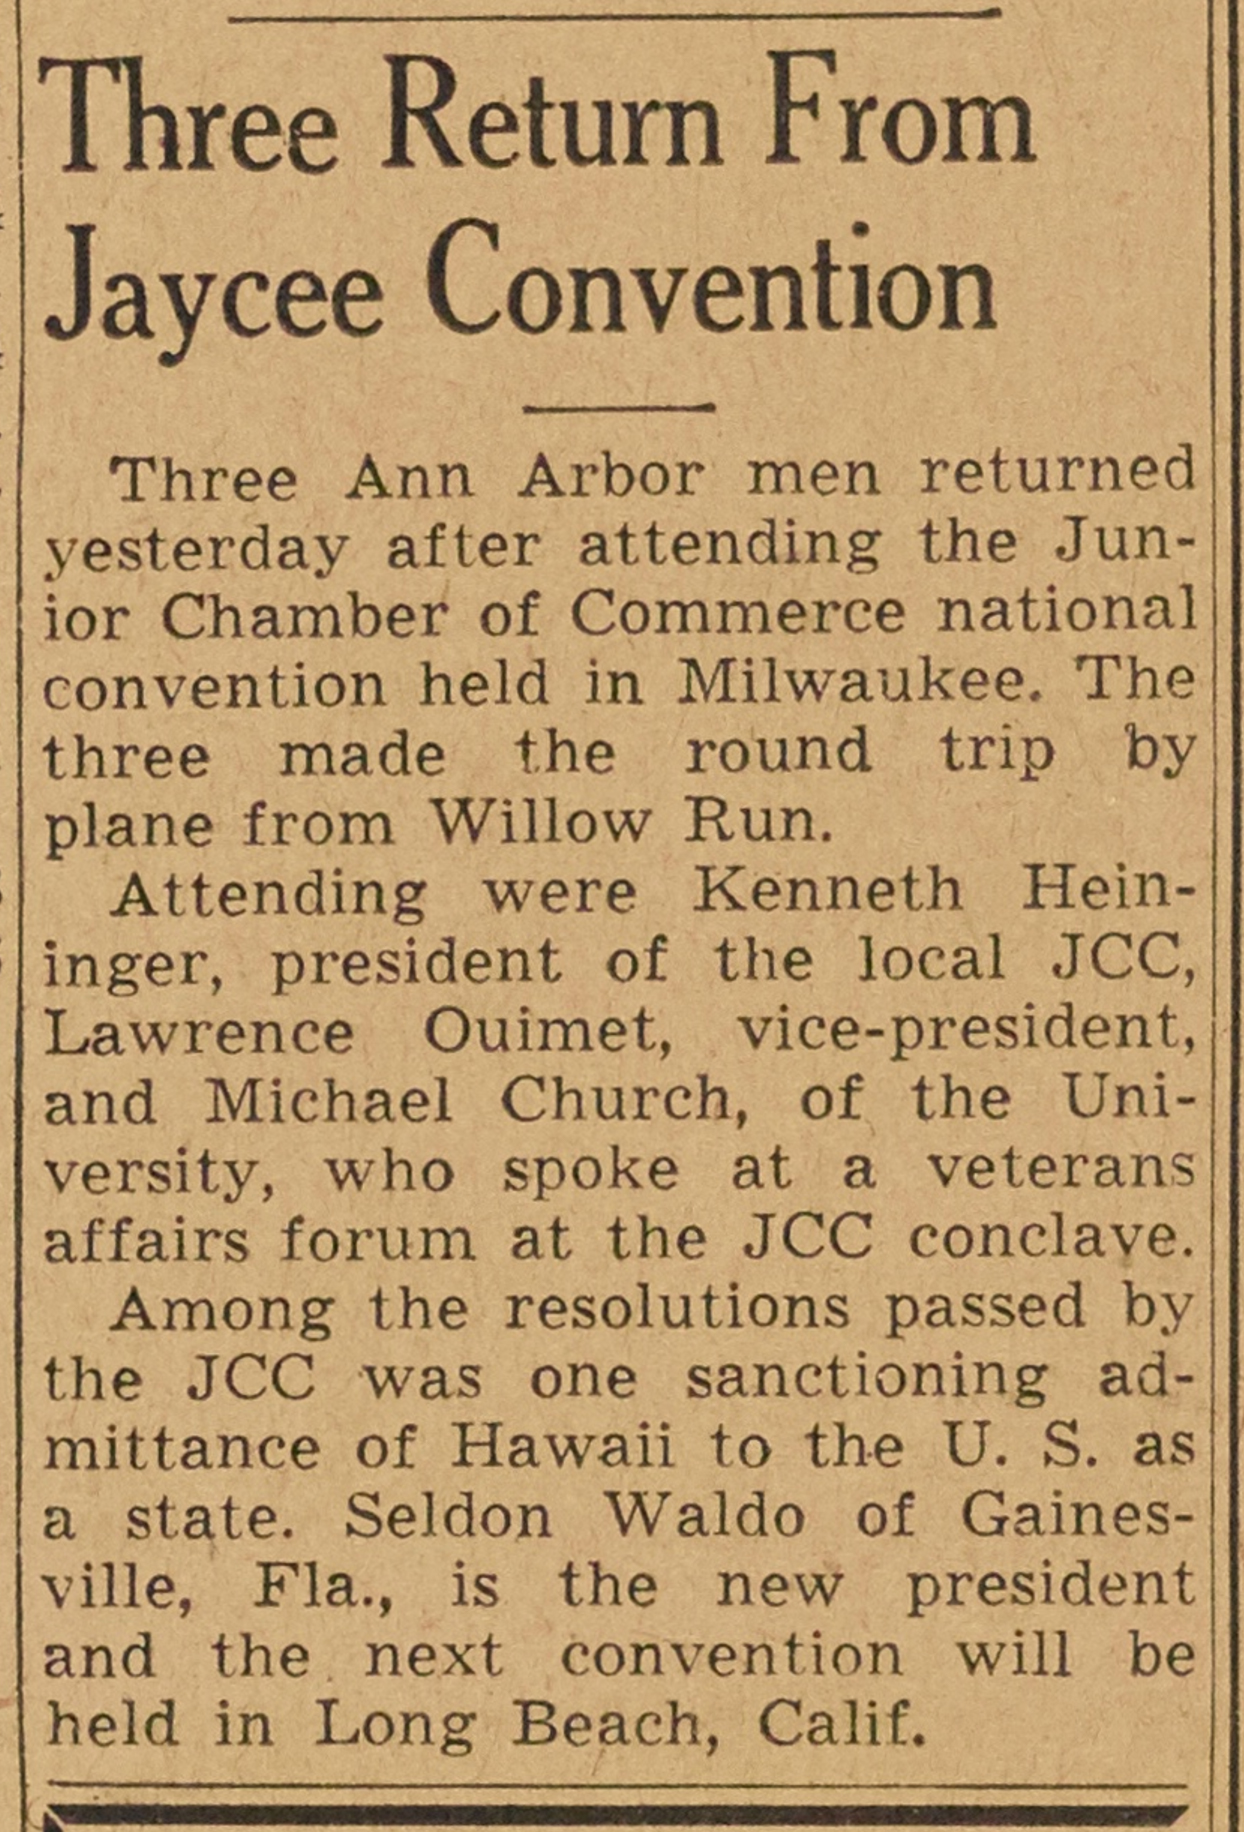 Three Return From Jaycee Convention image